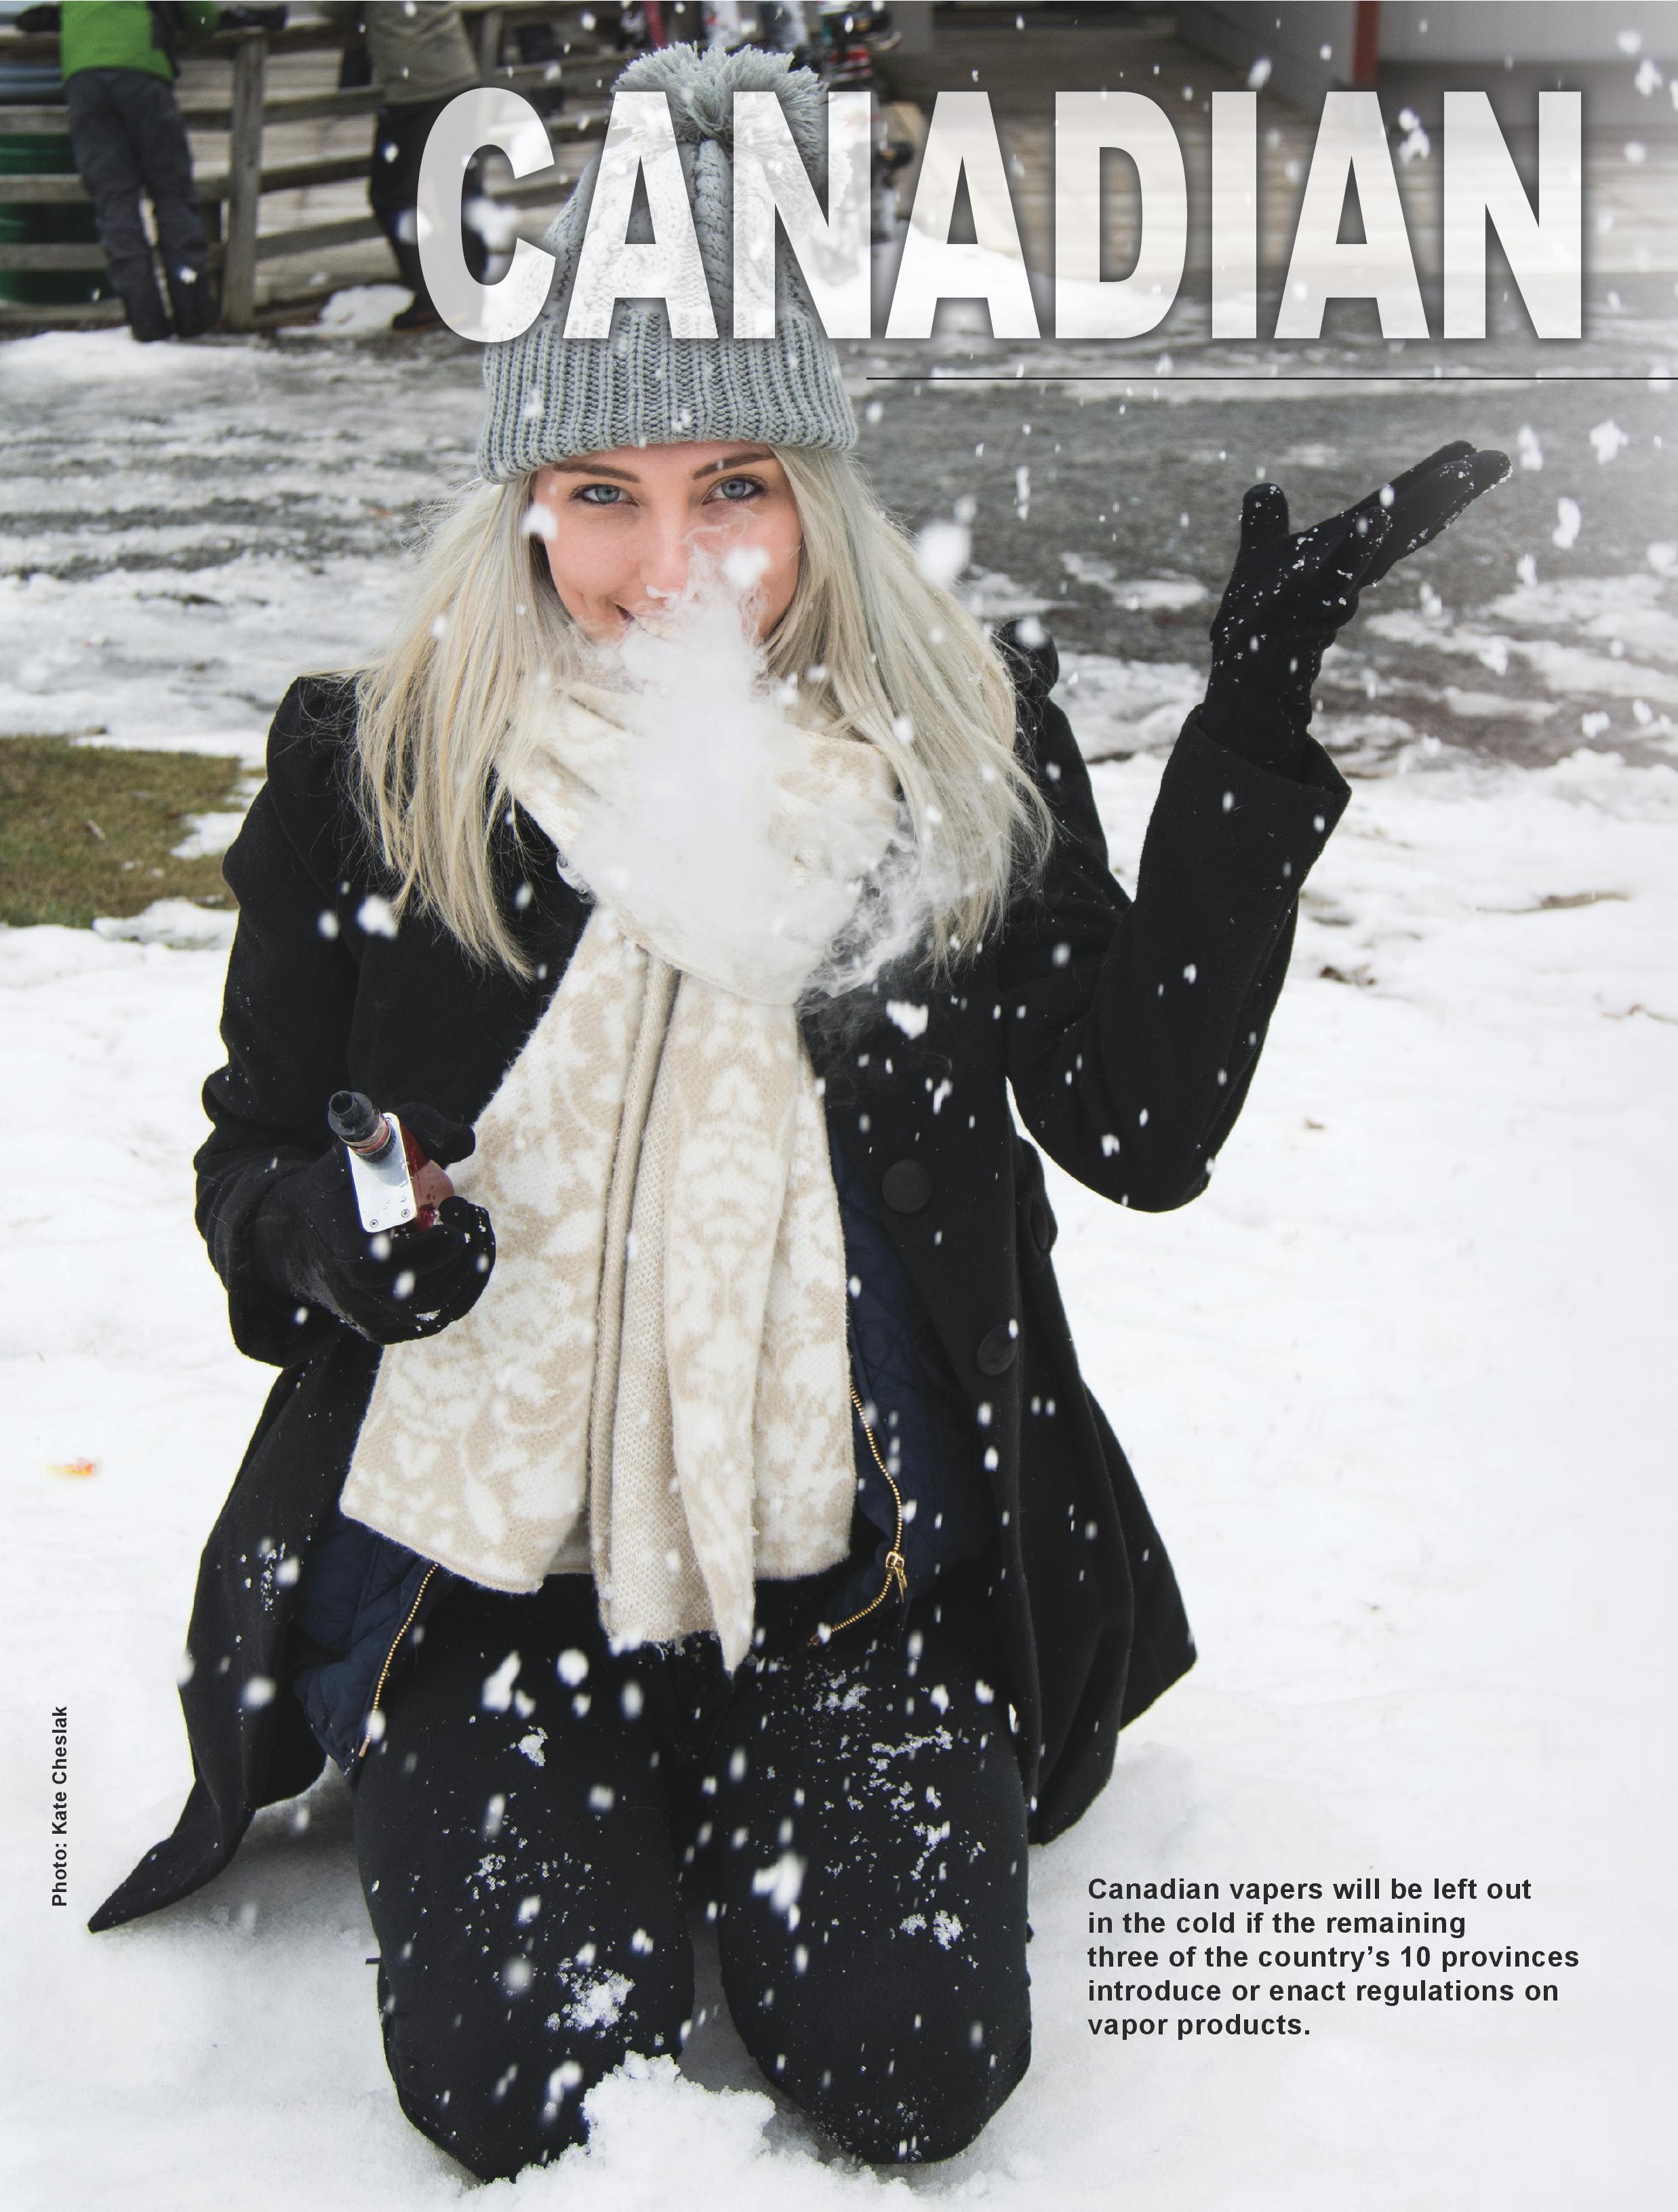 CanadianCrackdown-page-002.jpg